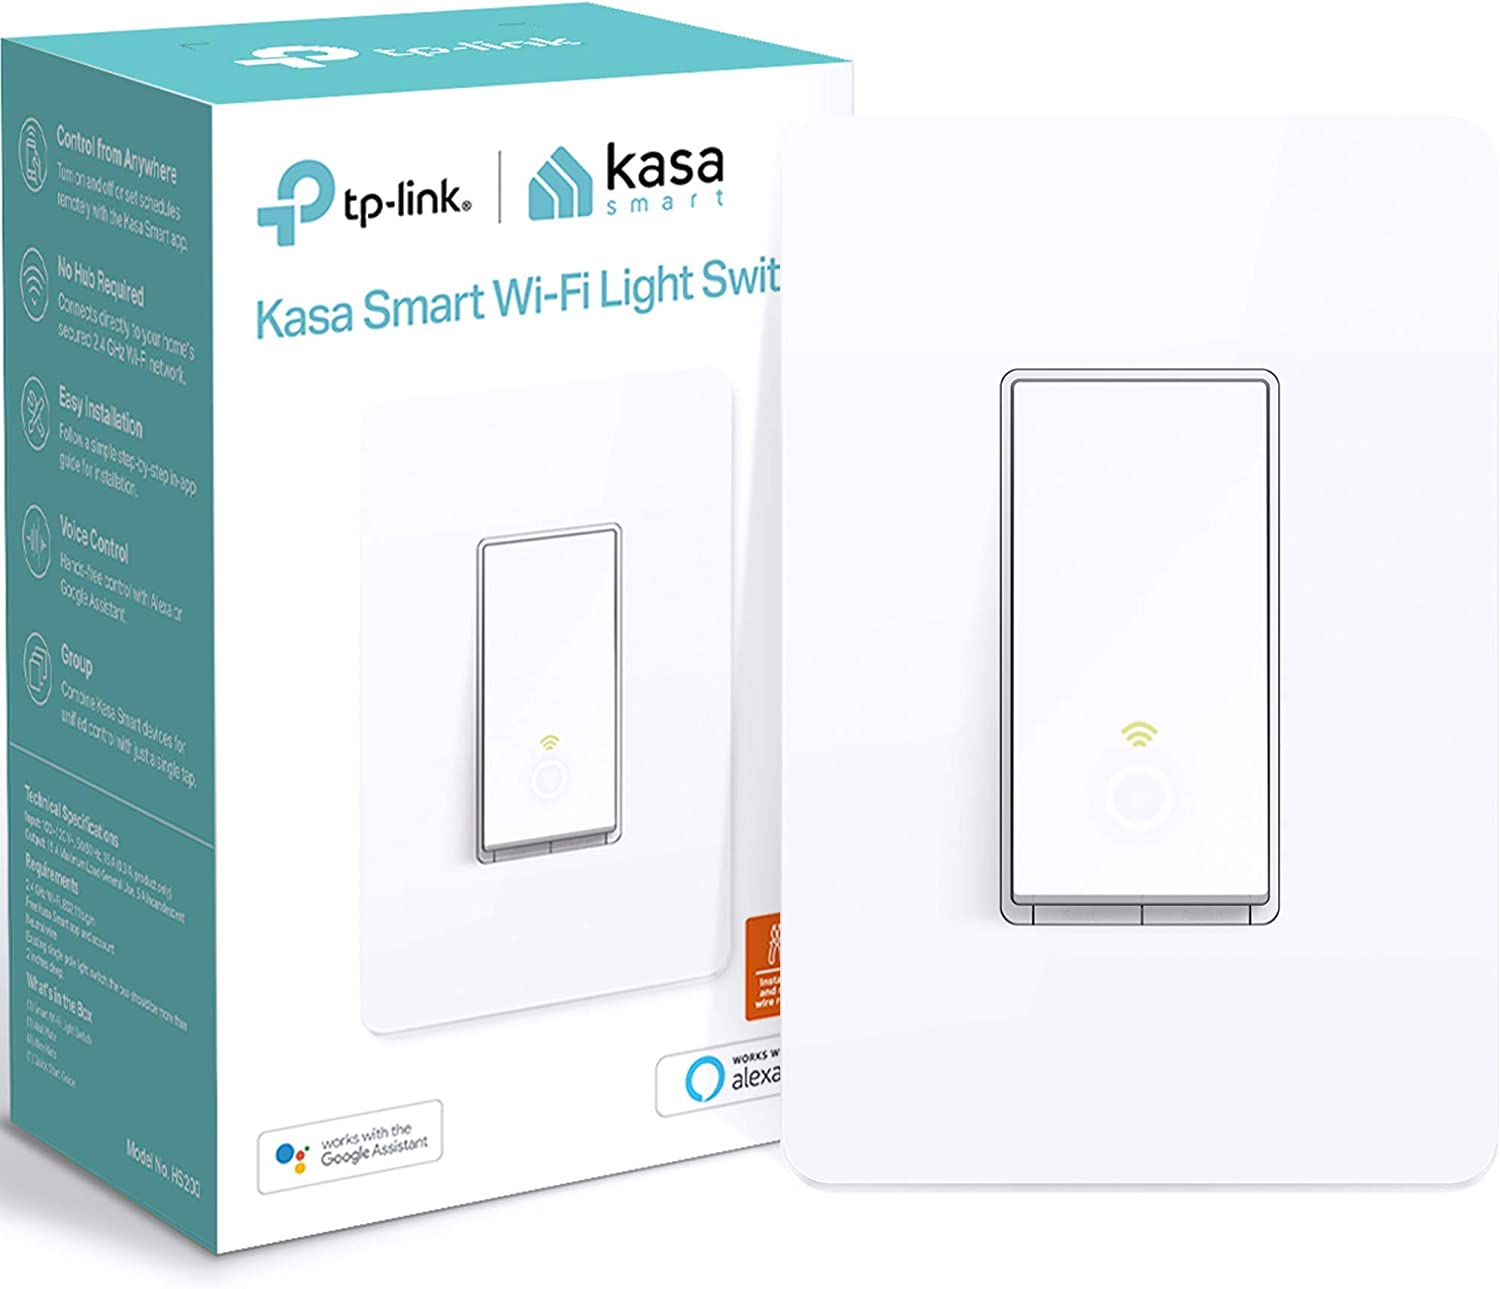 Kasa Smart Light Switch by TP-Link, Single Pole, Needs Neutral Wire, 2.4Ghz WiFi Light Switch Works with Alexa and Google Assistant, UL Certified, 1-Pack (HS200), White - -